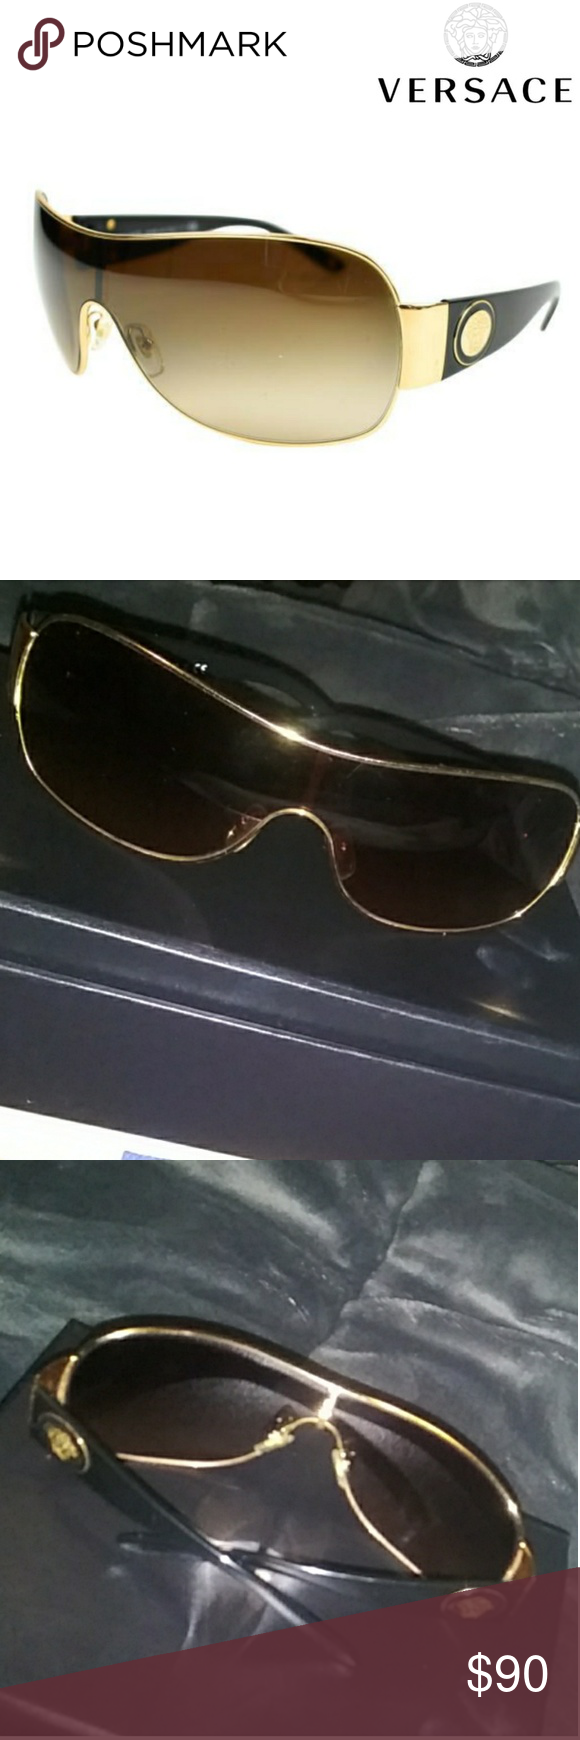 d91b4d7adf Versace Sunnies Versace women s shield sunglasses MOD 2101 1002 13 120 3N  Black Gold with brown Gradient lenses Great condition with minor blemishes  from ...